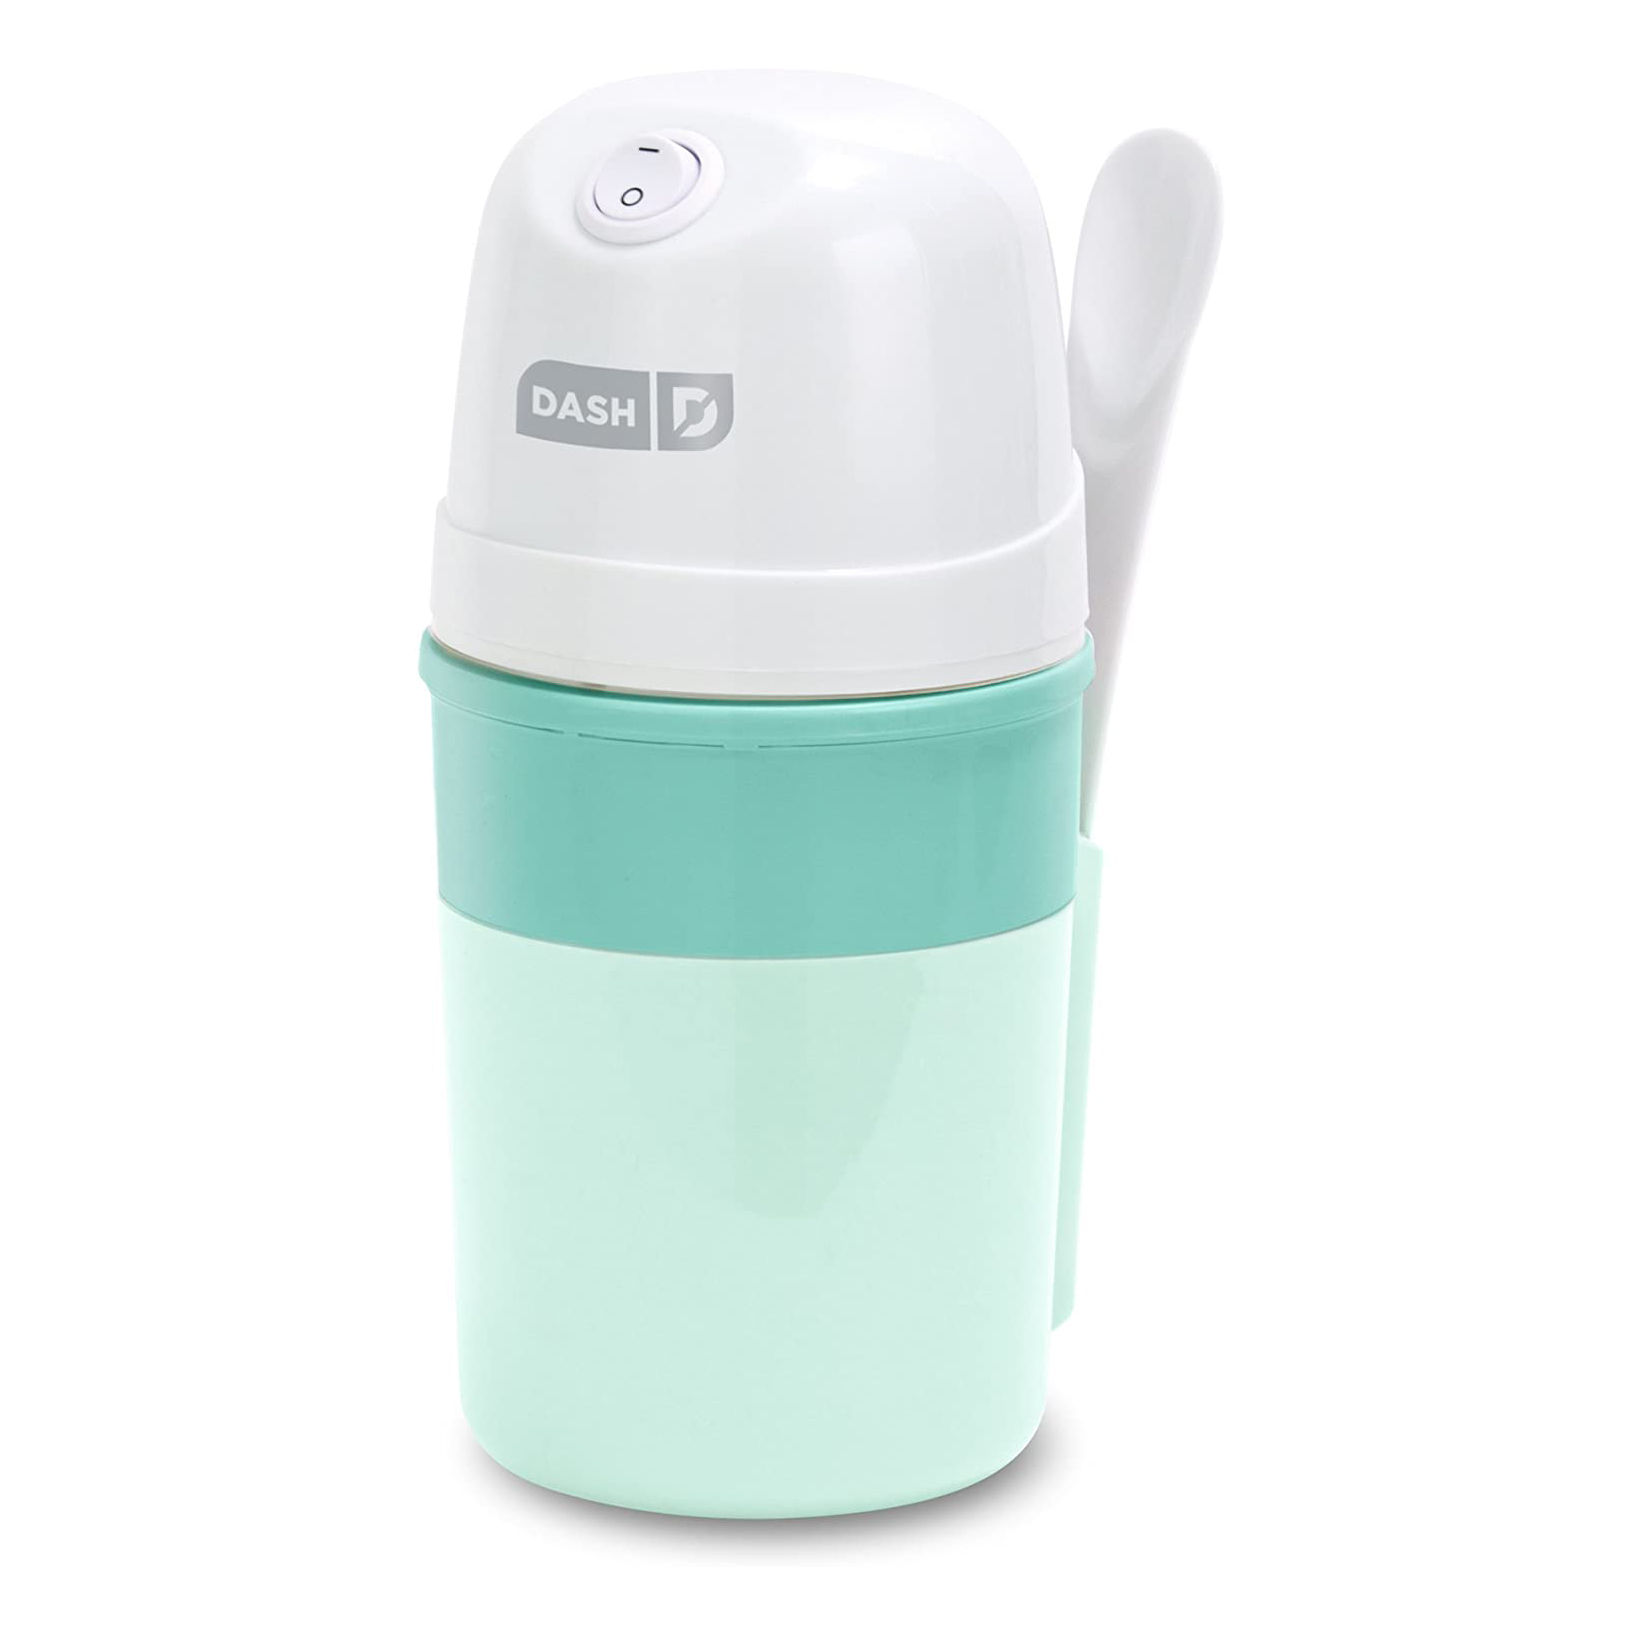 dash pint electric ice cream maker